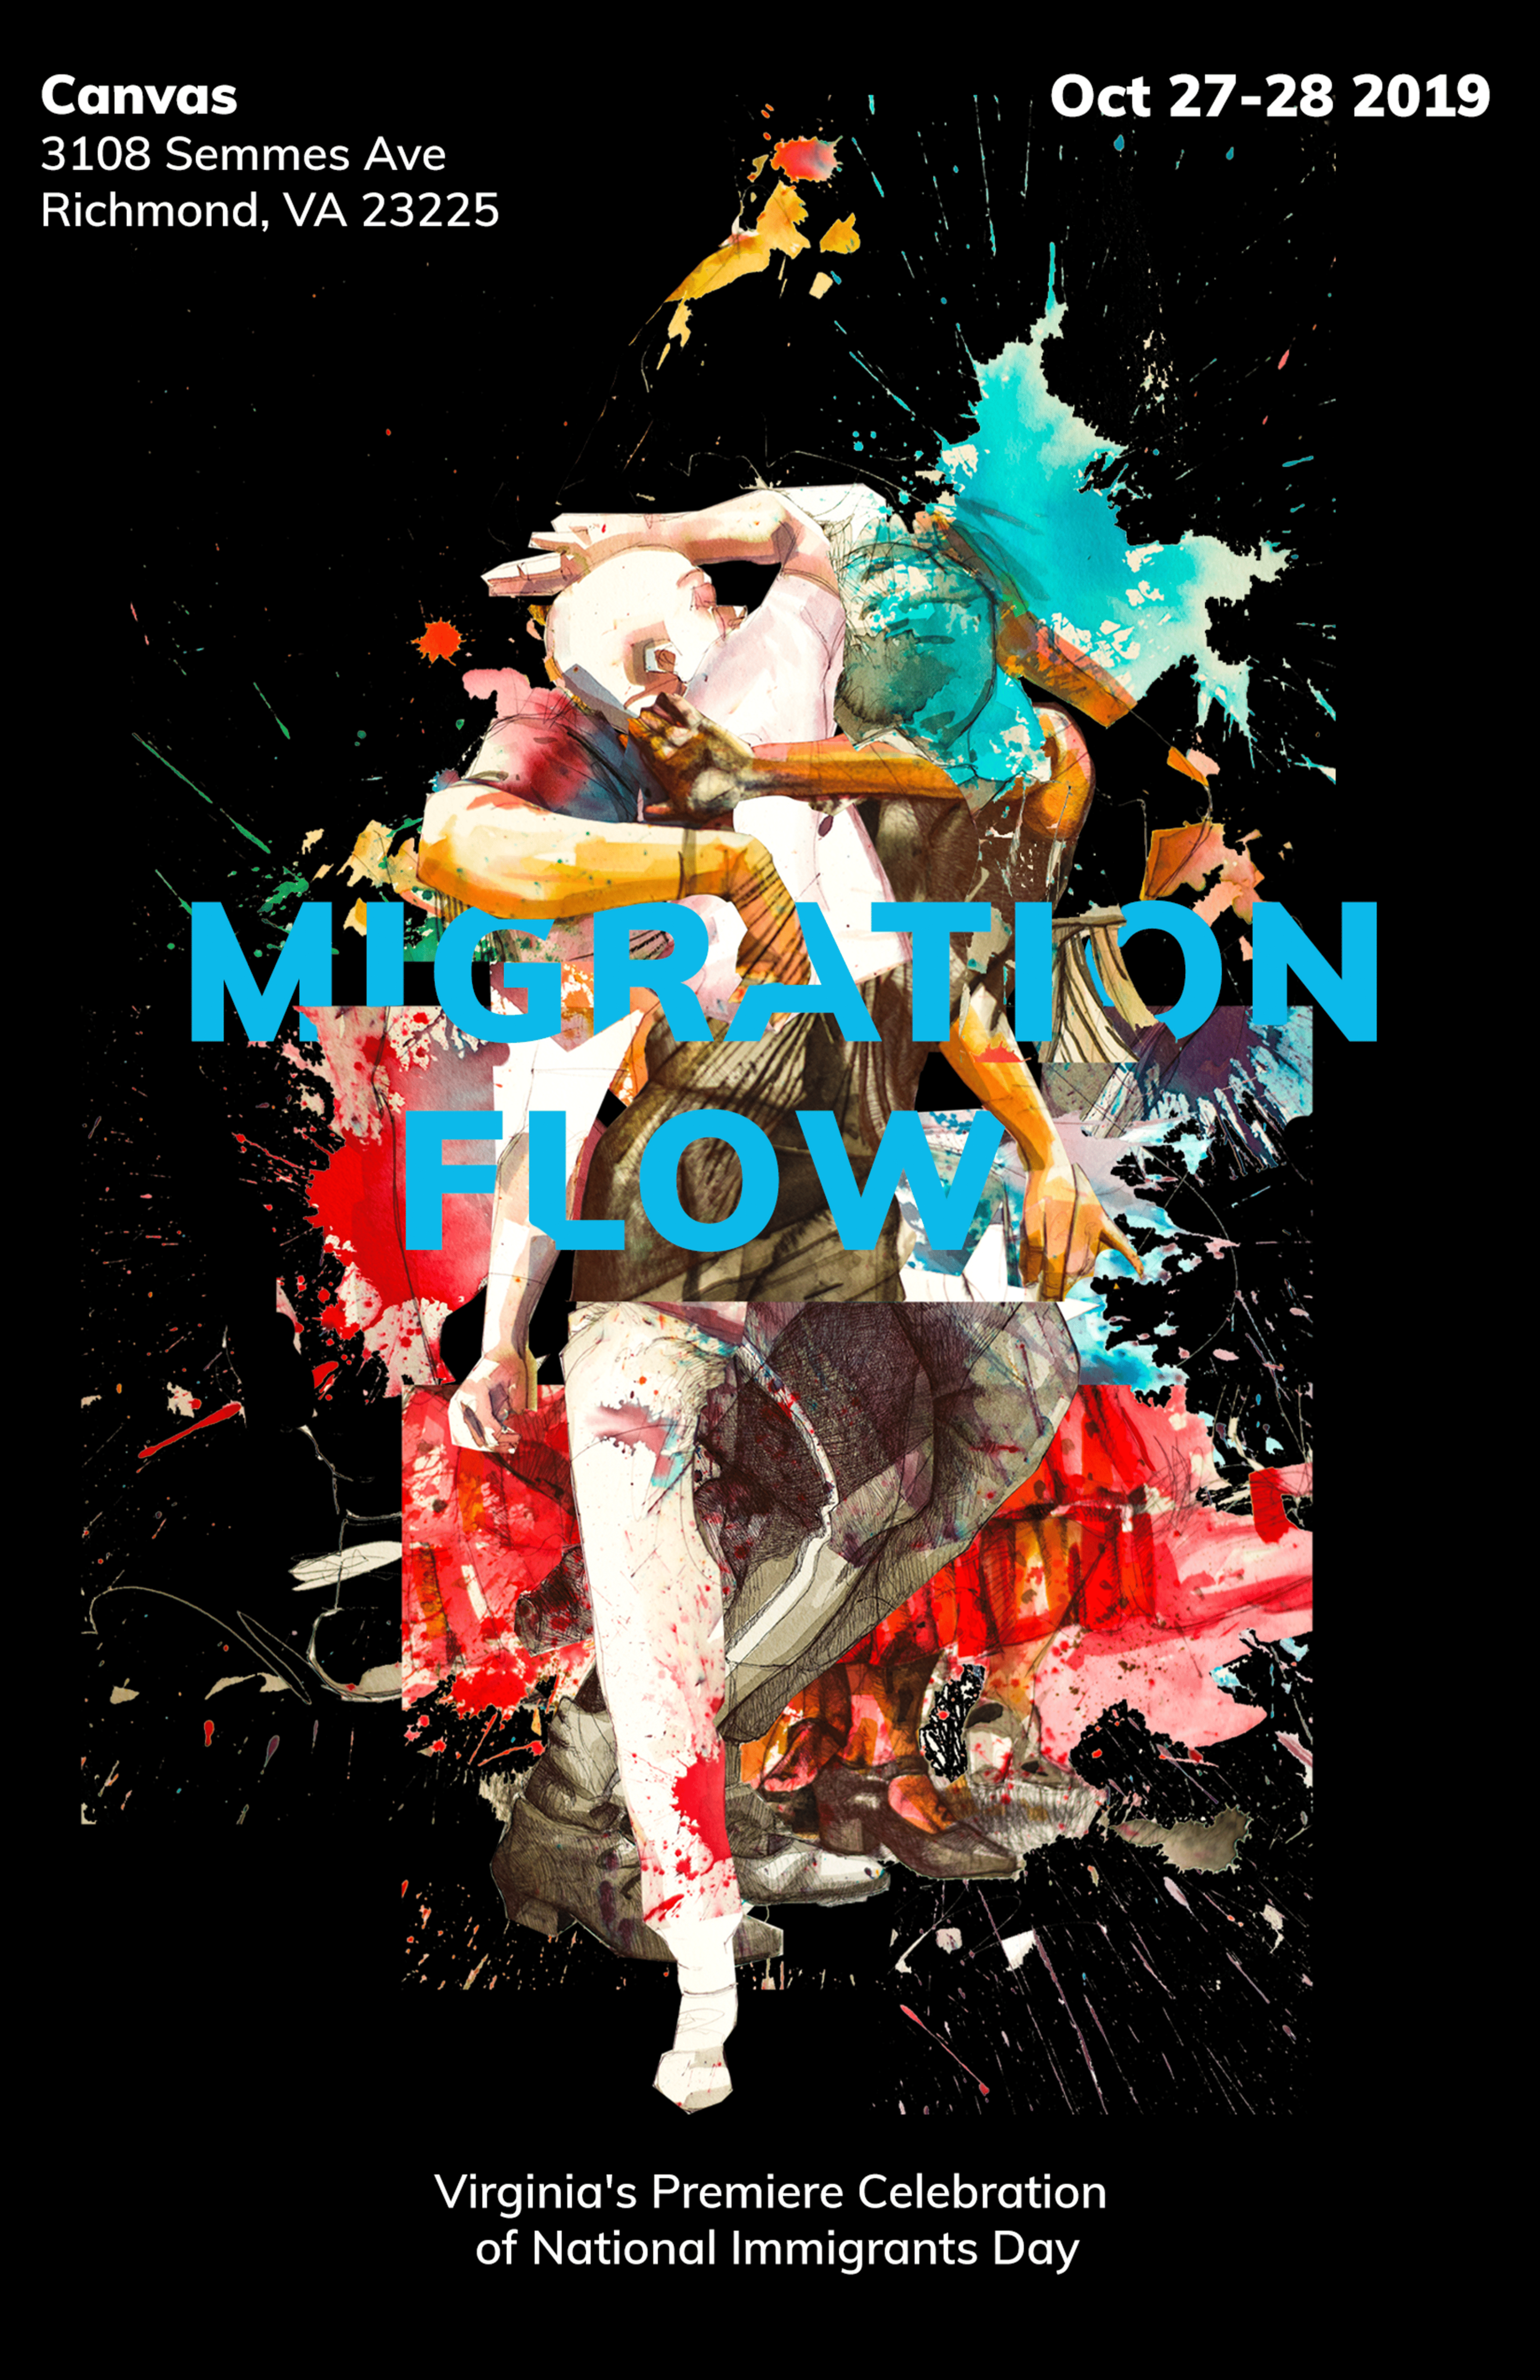 Initiatives of Change is honored to partner with Alfonso Perez Acosta on MIGRATION FLOW, the first public celebration of National Immigrants Day in Virginia. Above is a collage image of portrait drawings from the upcoming exhibition event.